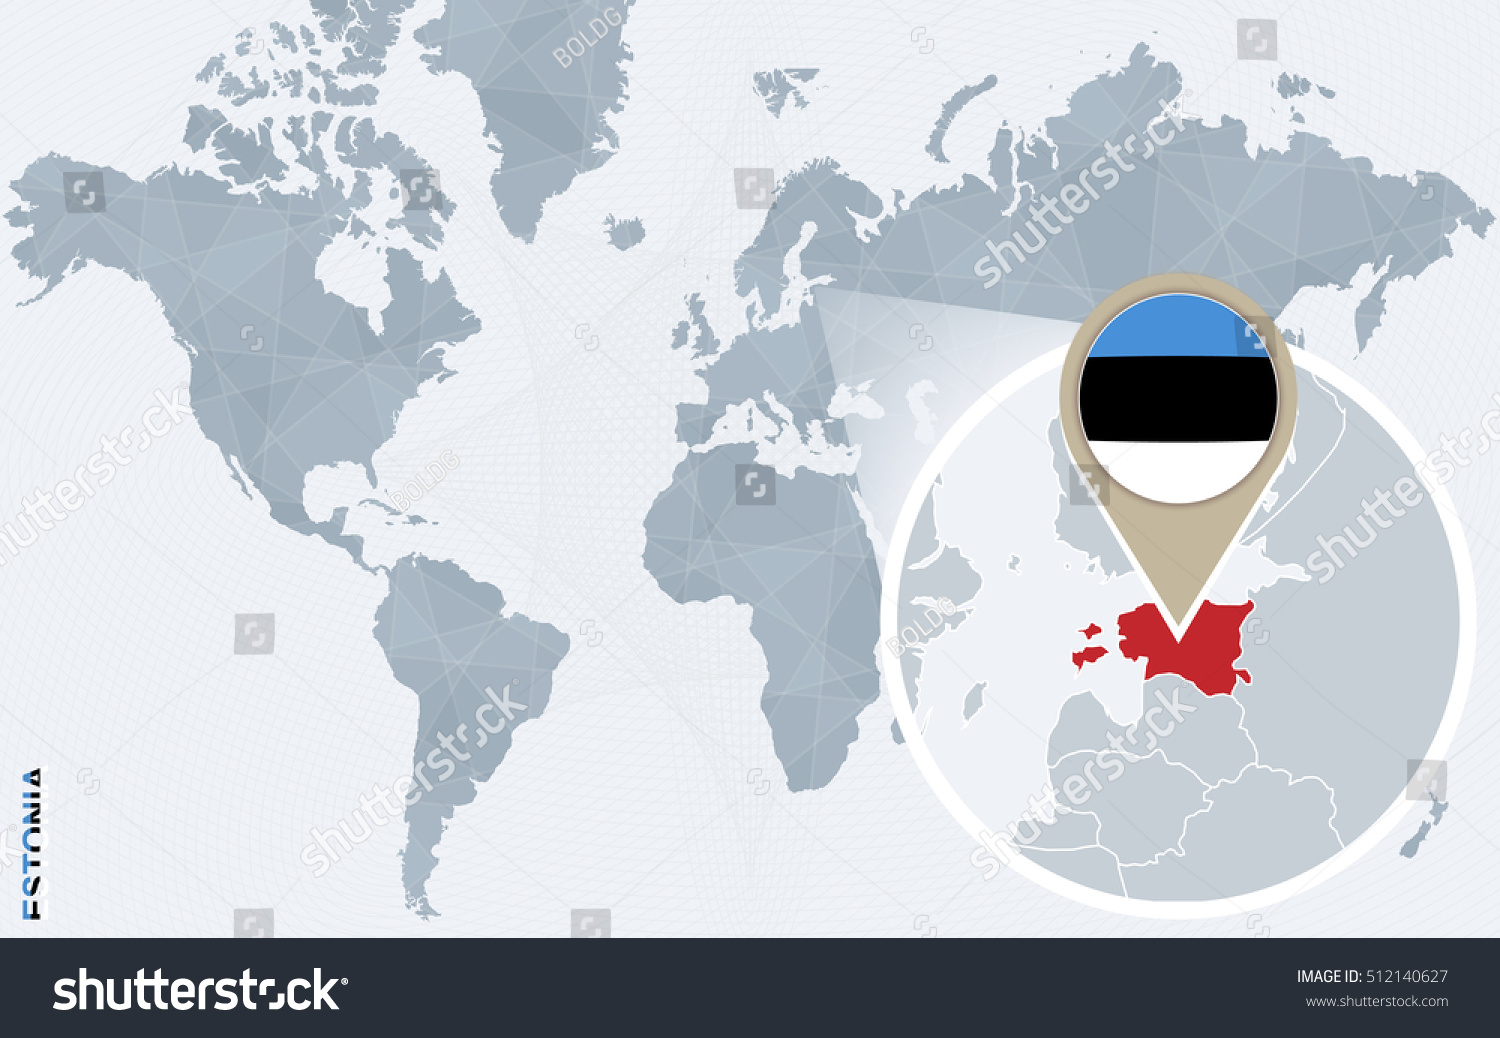 Royalty Free Stock Illustration Of Abstract Blue World Map Magnified